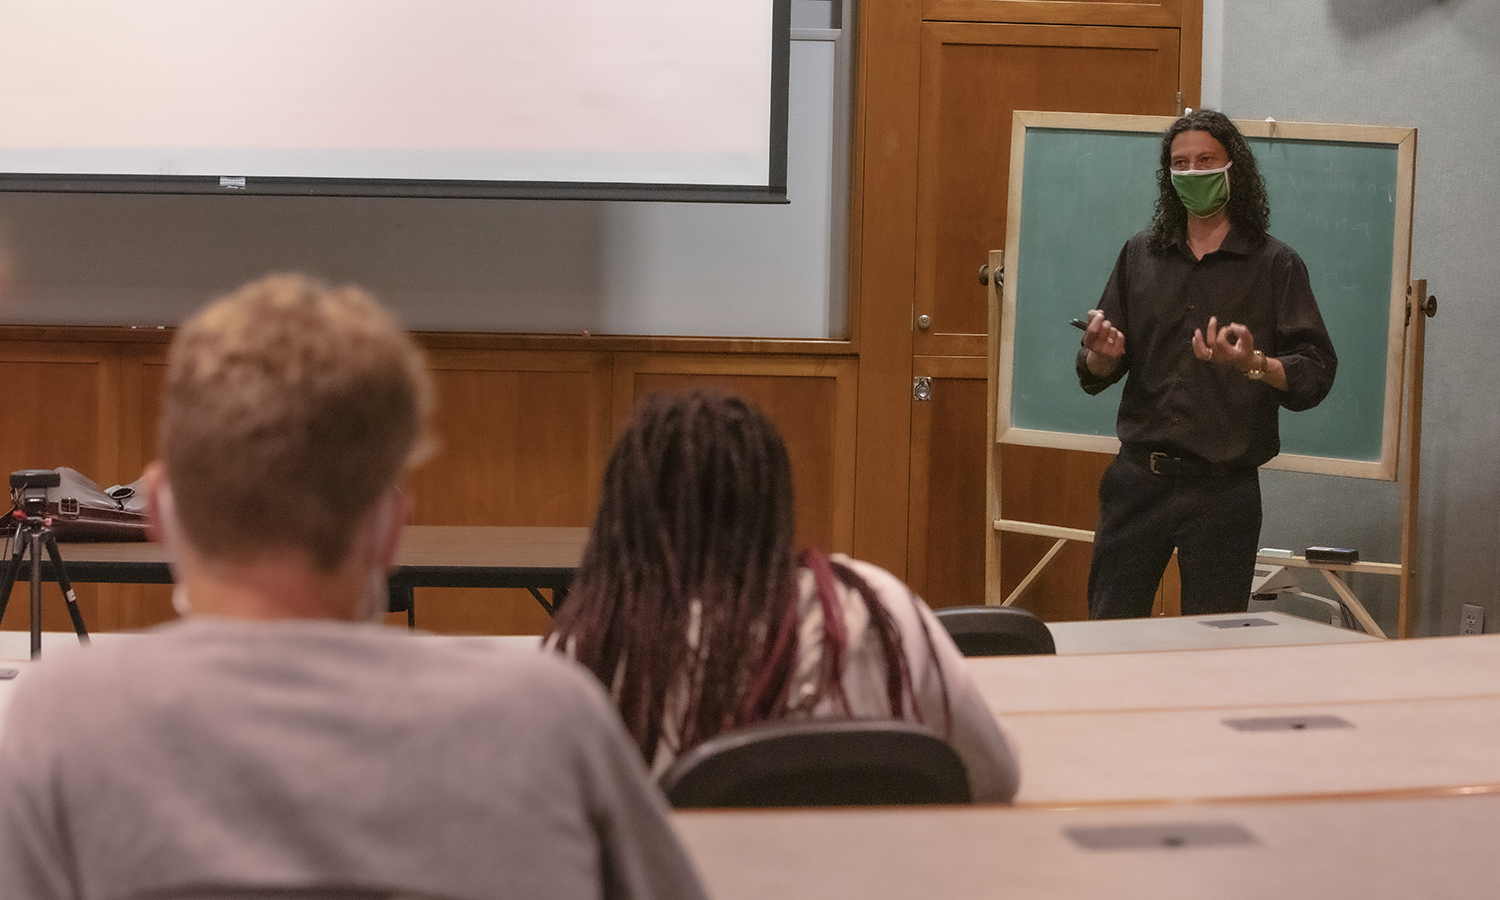 """Slade Virgil Classroom  KColton That class is FSEM 025 - """"Unfreedoms and the 'Problem' of Race"""" and the lecture was titled """"The Problem of the Single Story""""."""